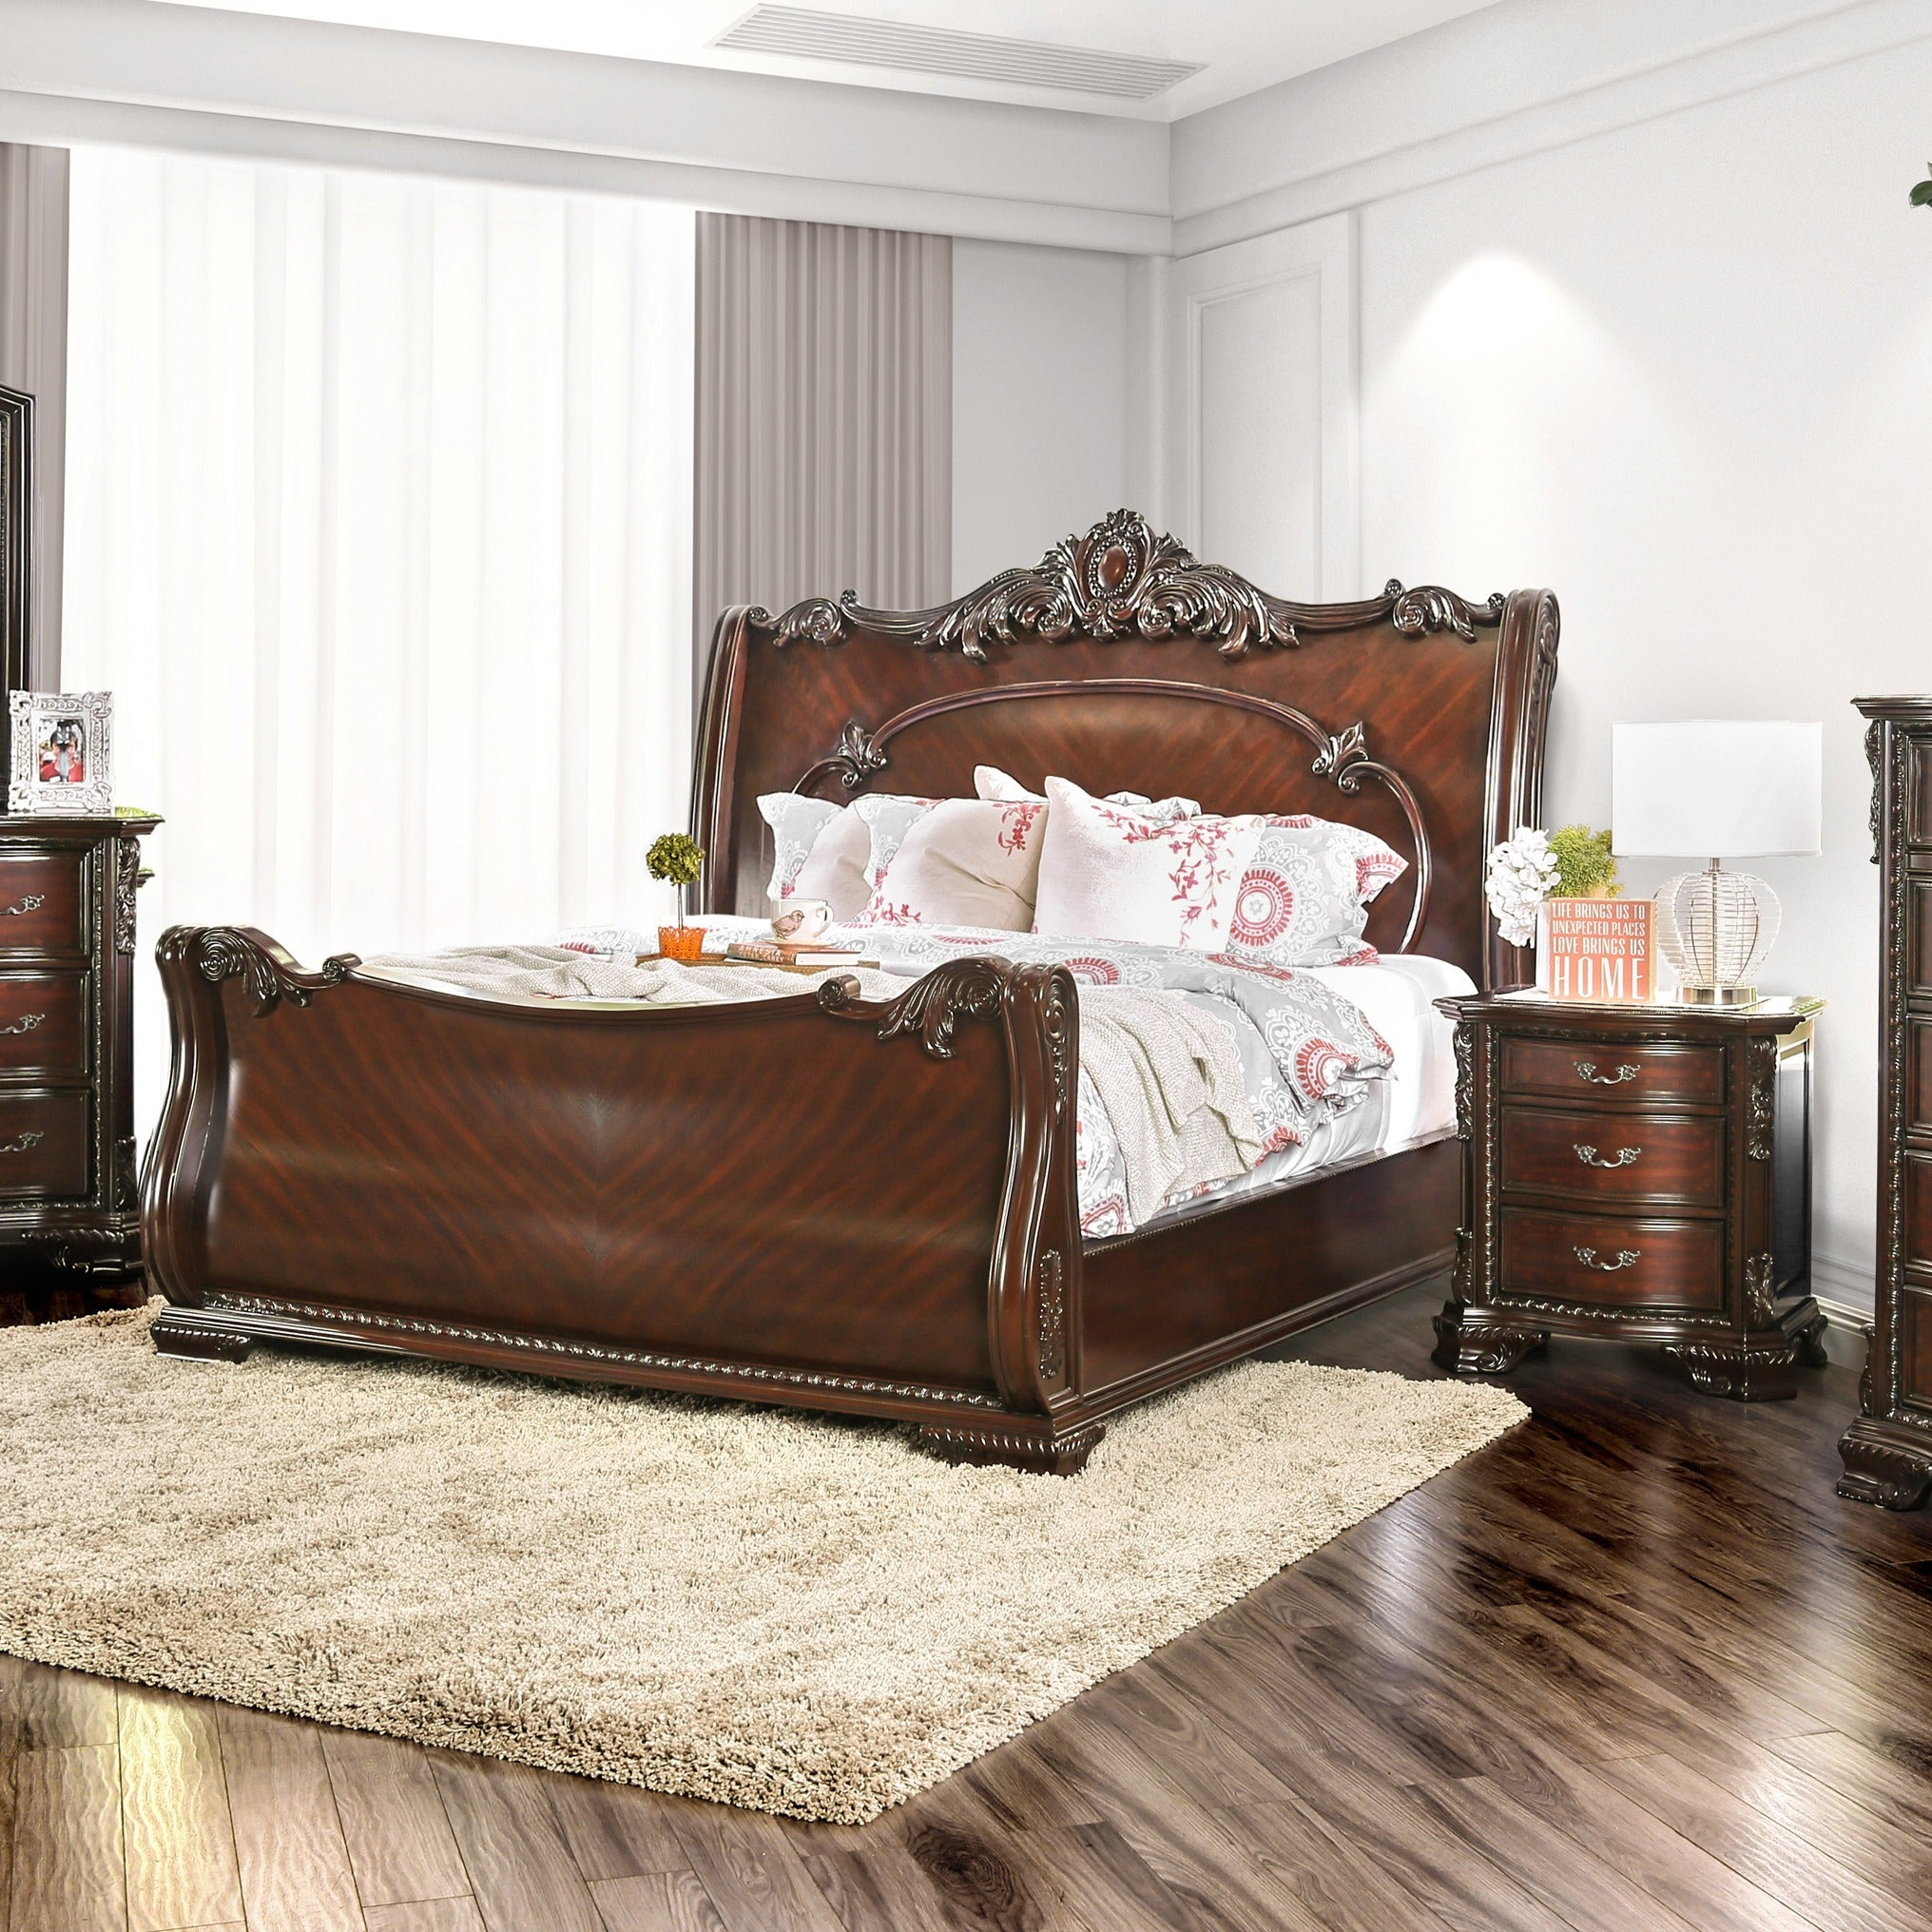 Furniture of America Luxury Brown Cherry Baroque-style Sl...